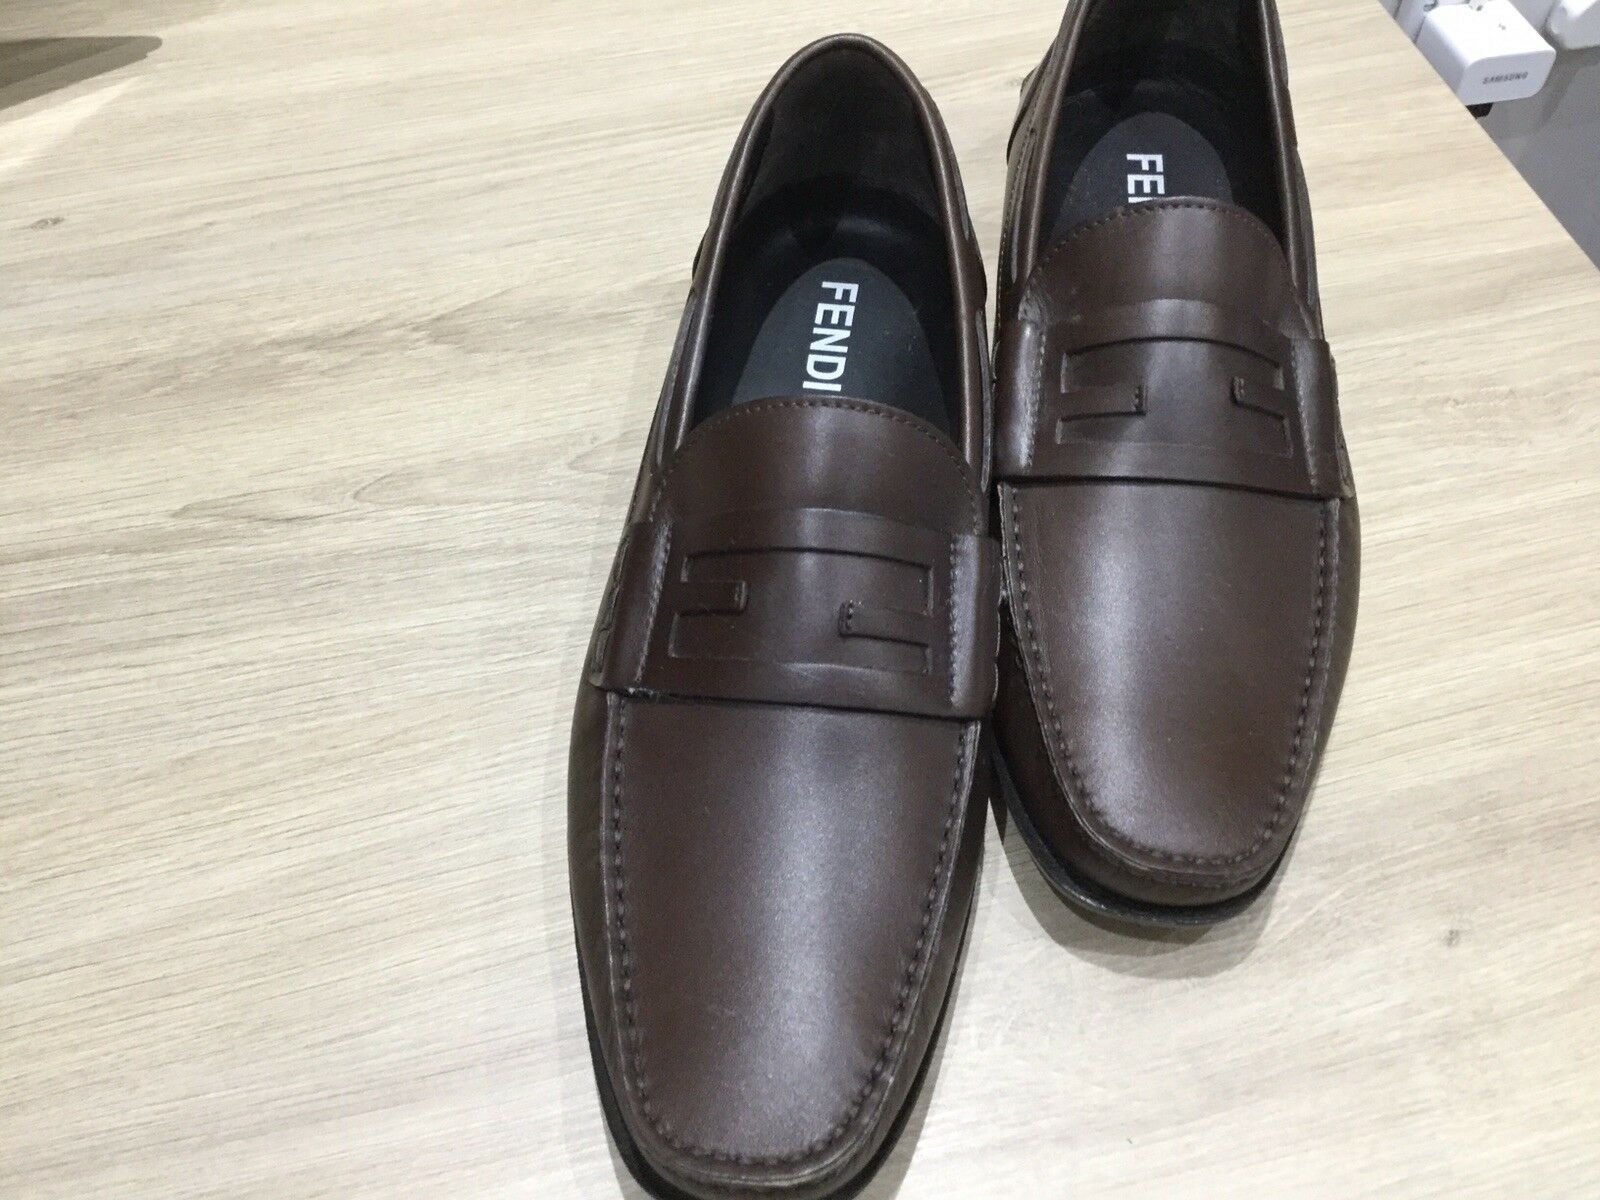 Fendi Men's Loafers, Calf Leather Brown. Rubber Sole RRP400